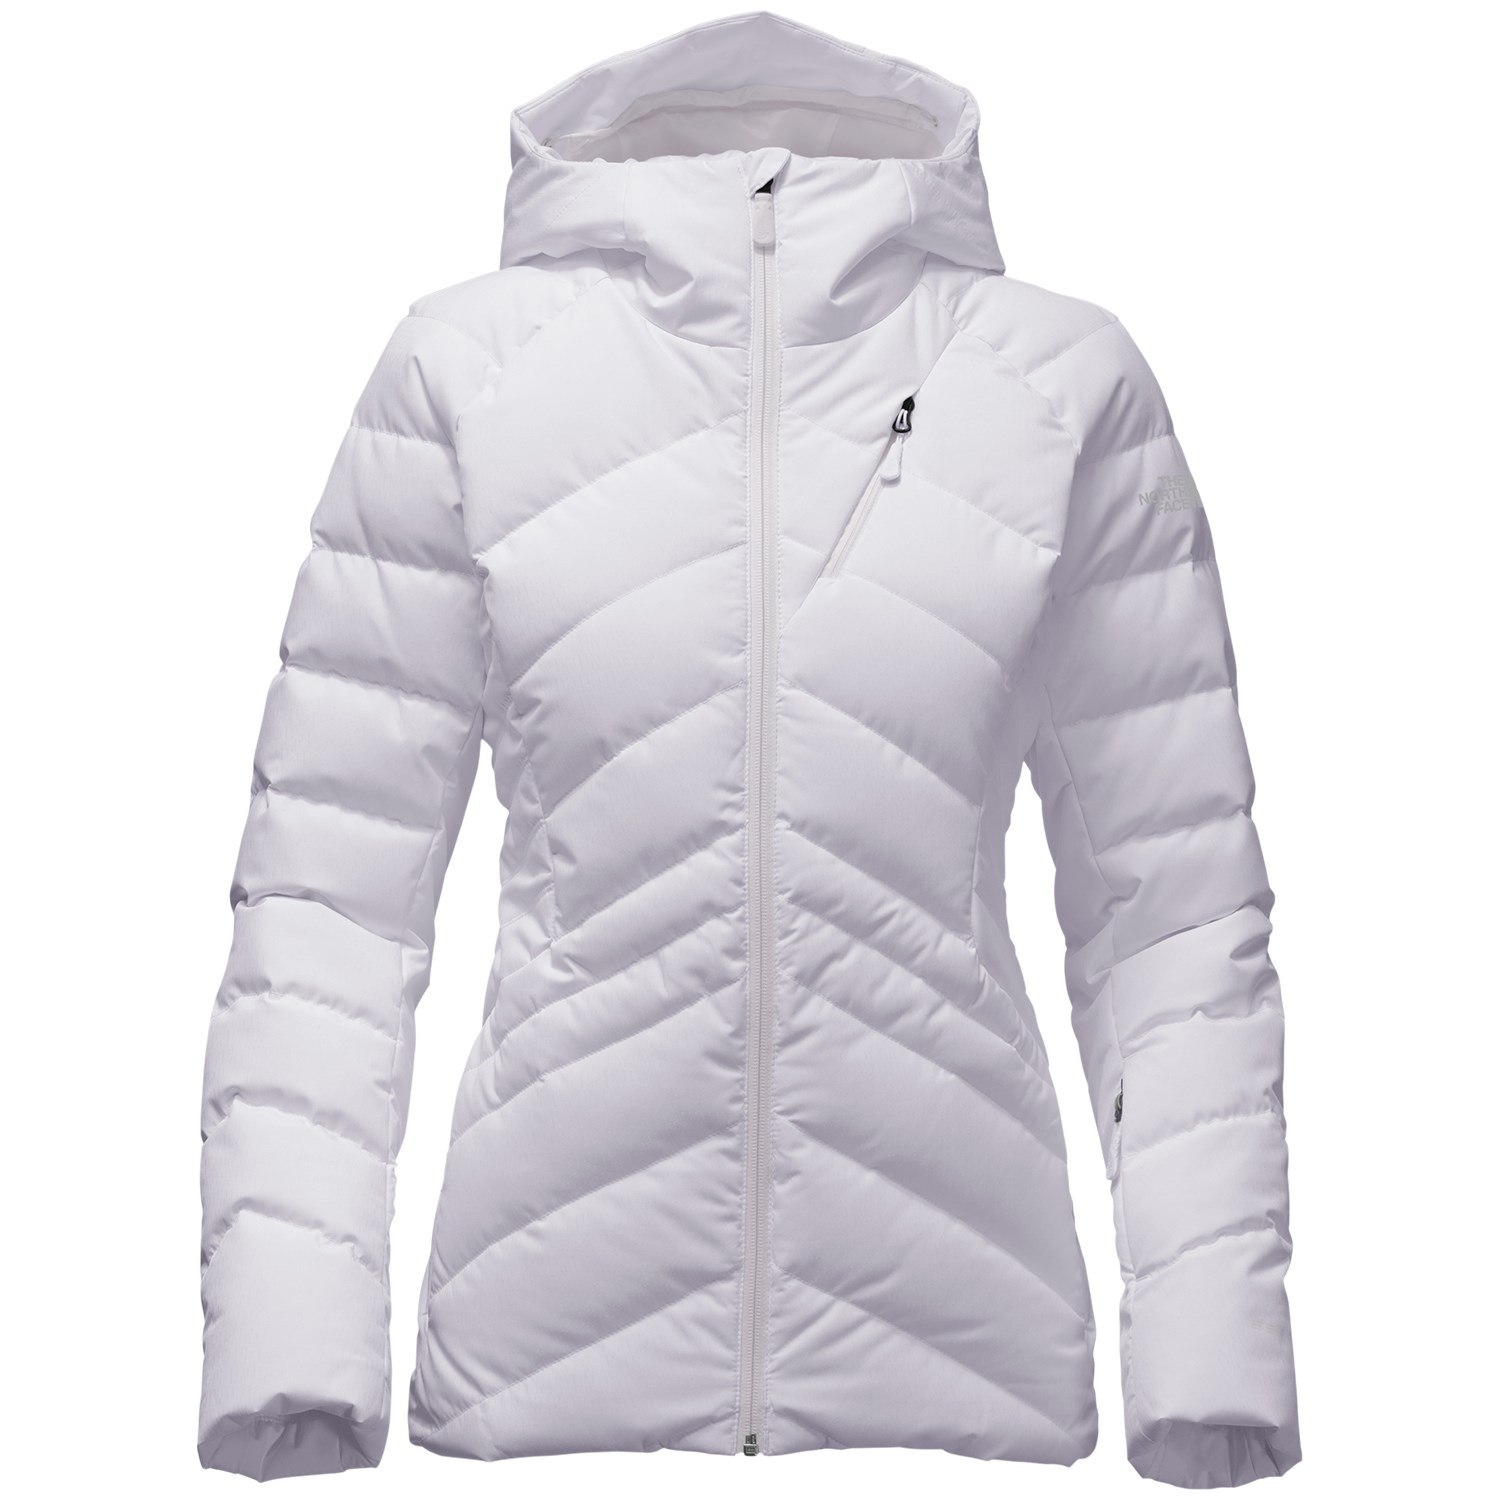 f4993c8a2e The North Face Heavenly Jacket - Women s